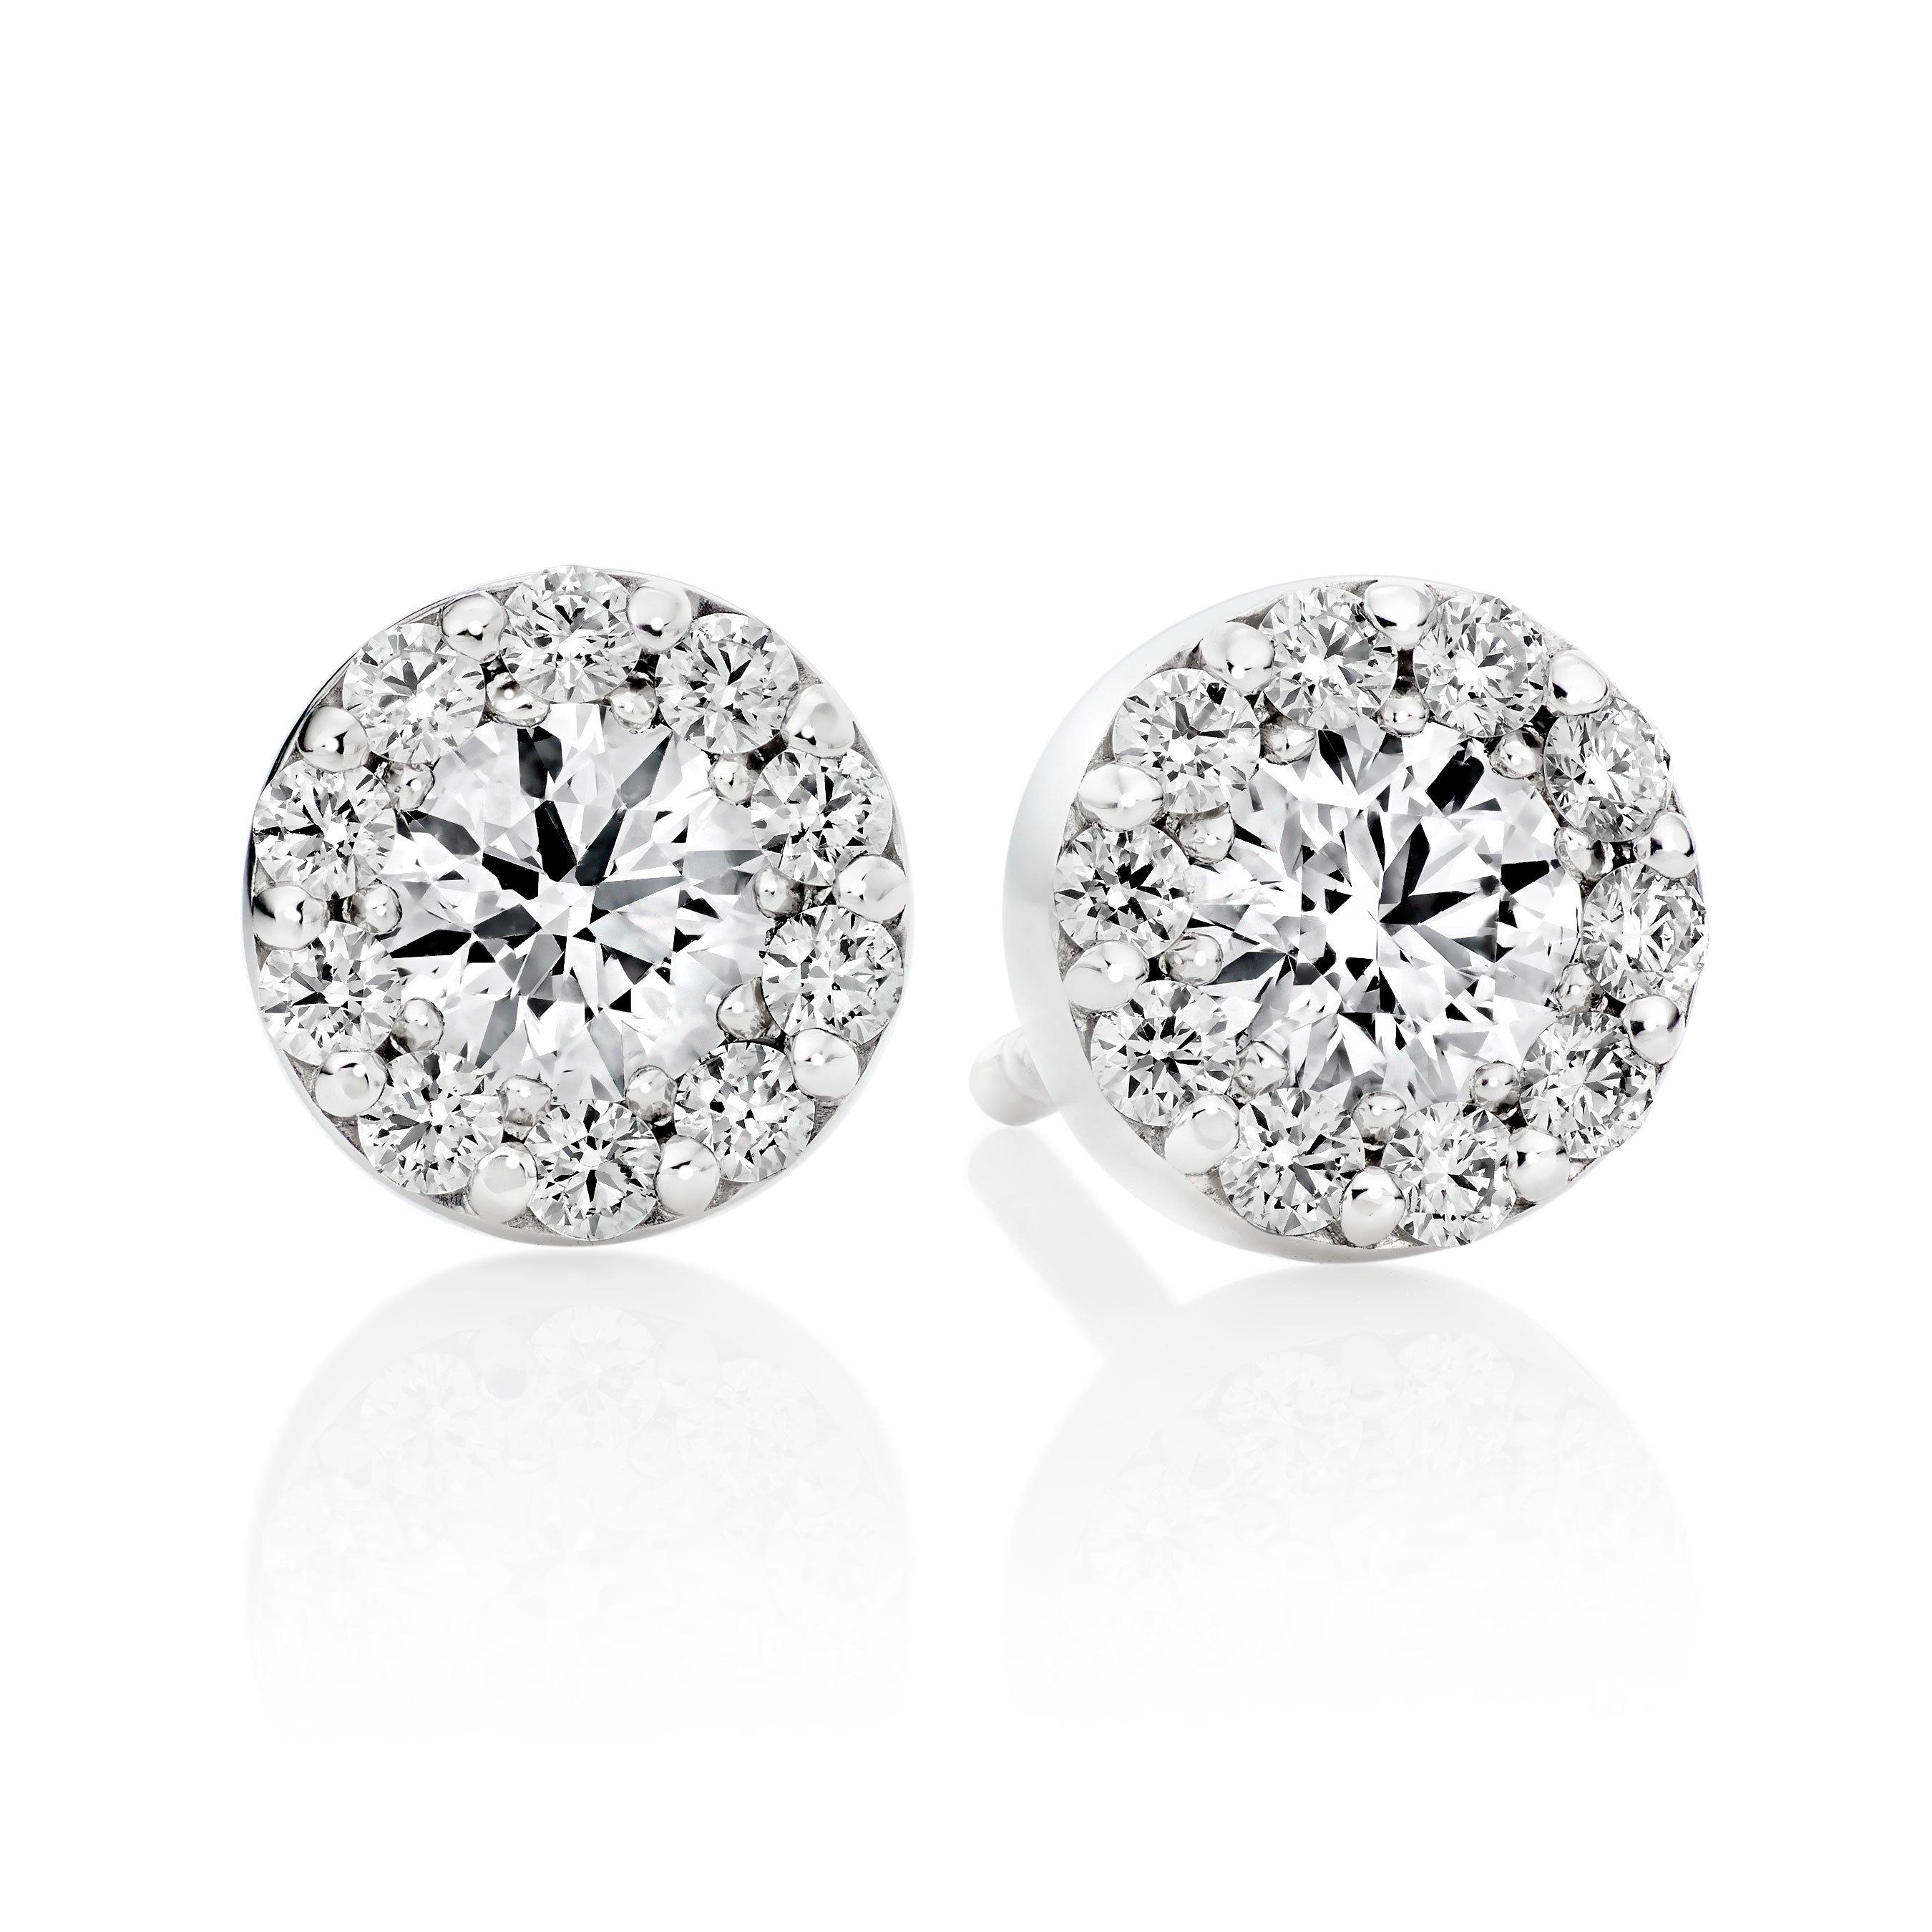 Hearts On Fire 18ct White Gold Diamond Cluster Earrings